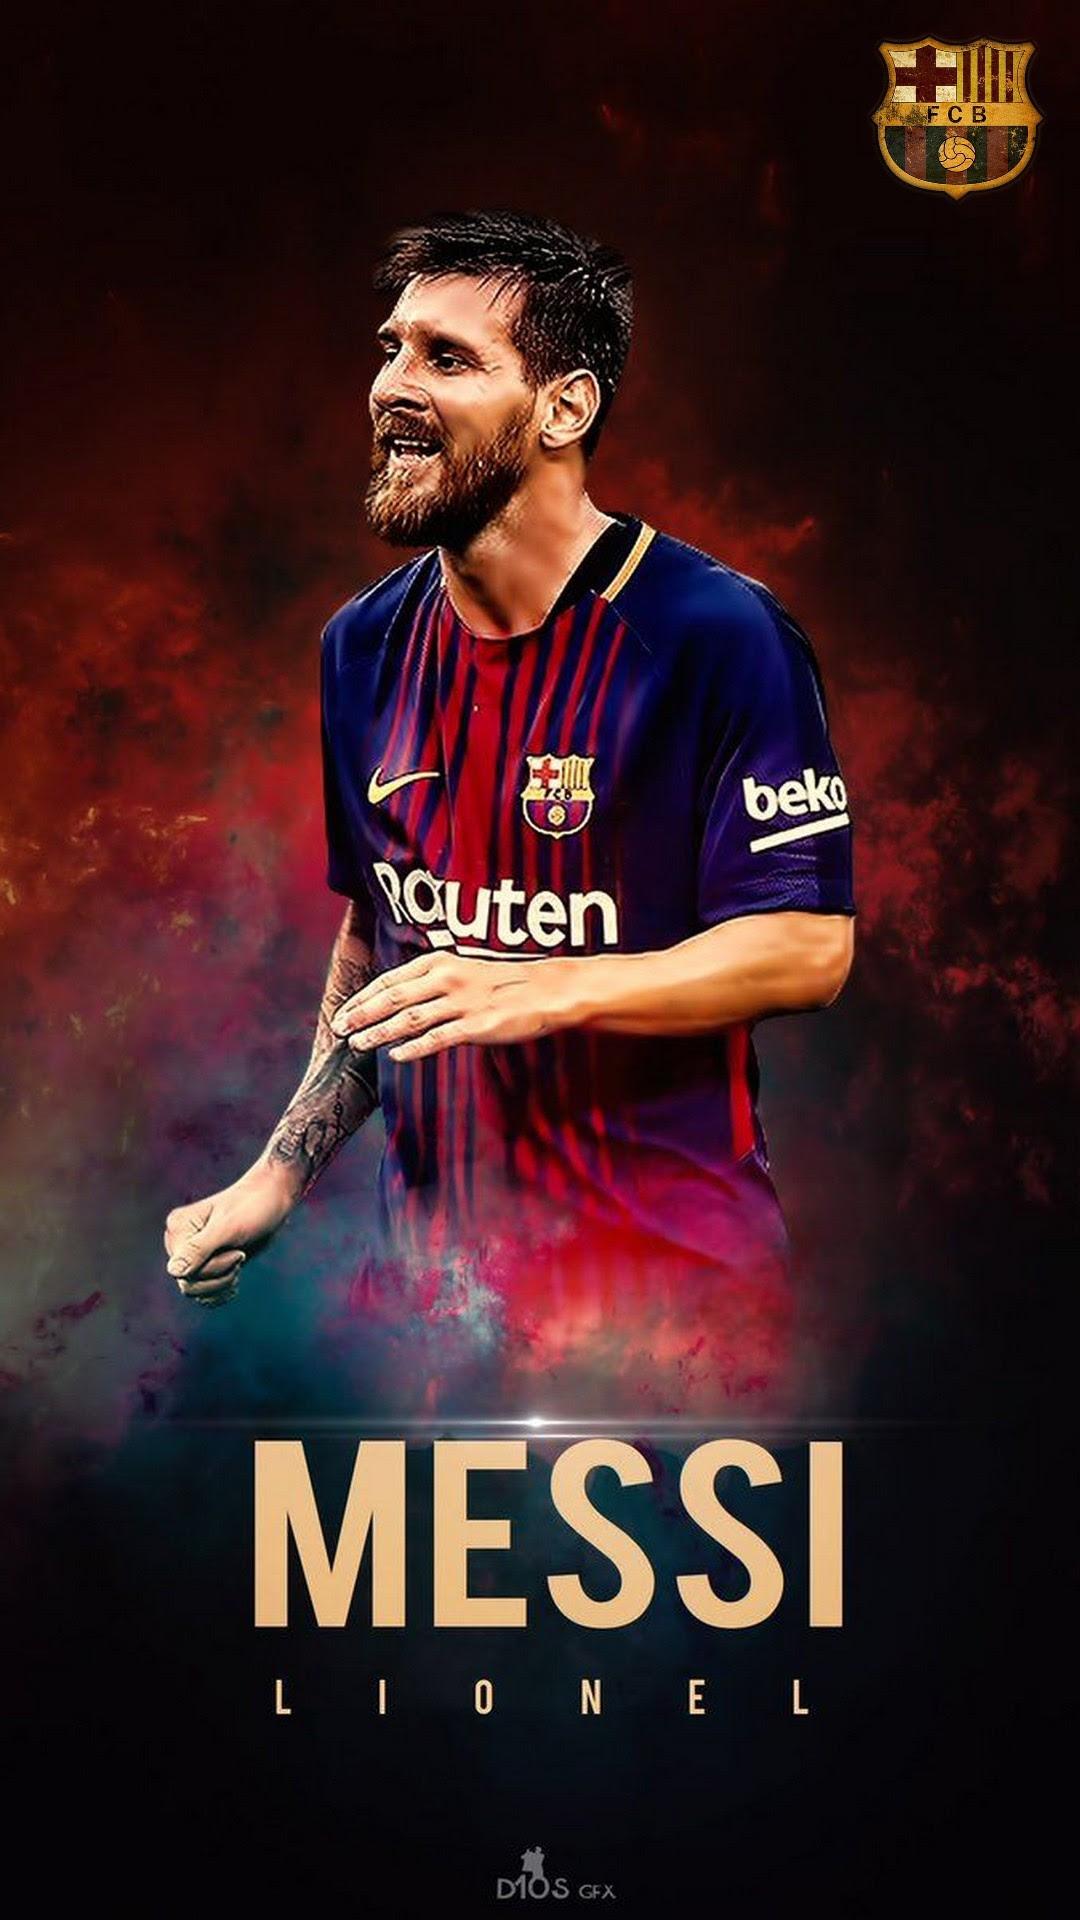 Lionel Messi Iphone Wallpapers 2019 Football Wallpaper